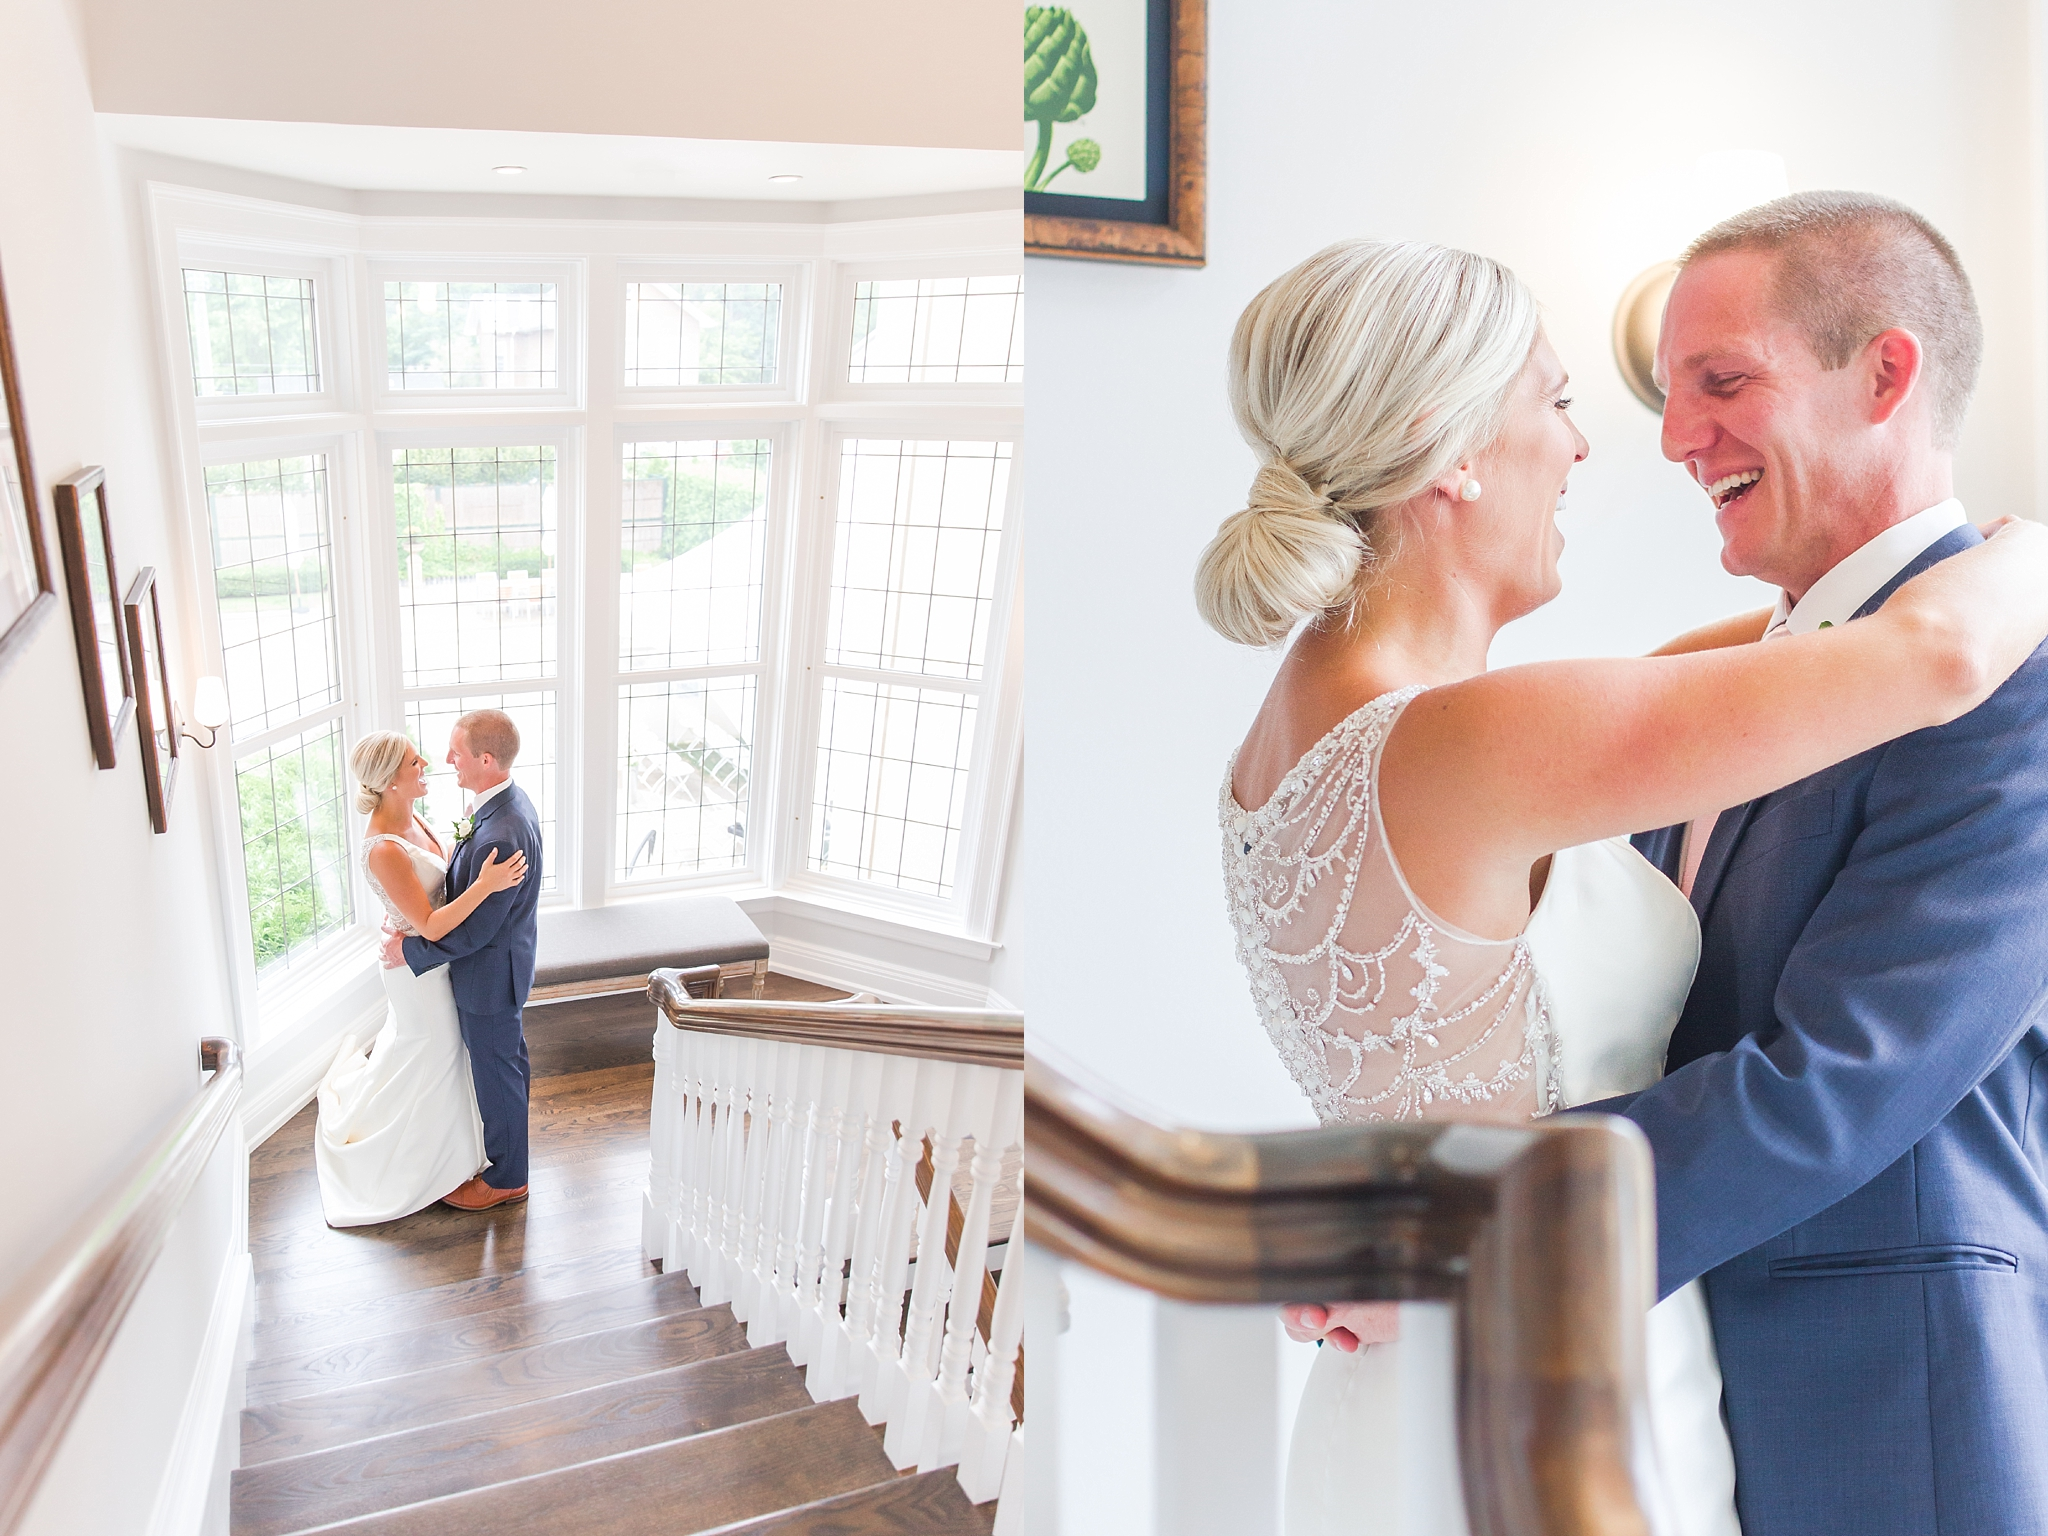 casually-chic-modern-wedding-photos-at-the-chapman-house-in-rochester-michigan-by-courtney-carolyn-photography_0014.jpg